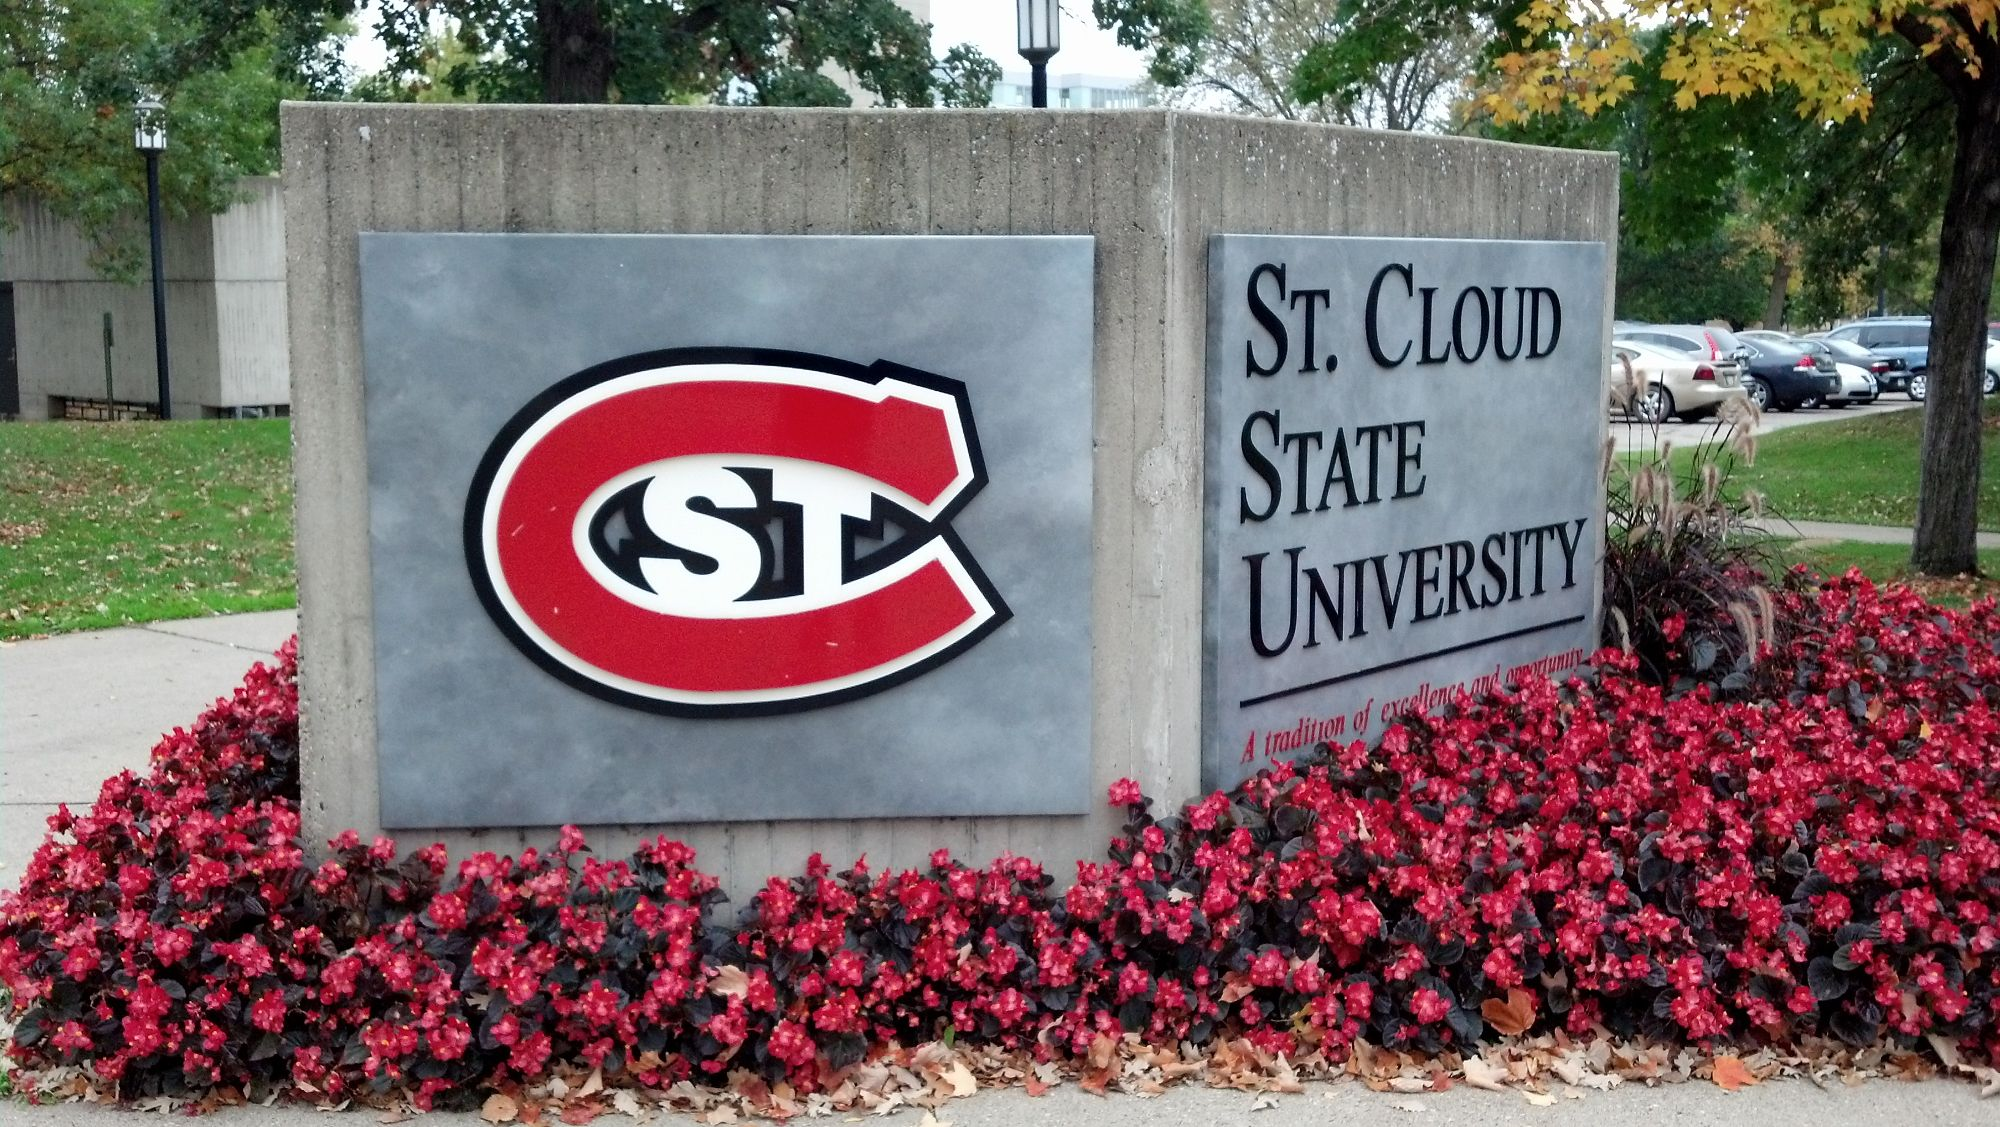 St. cloud state univerity